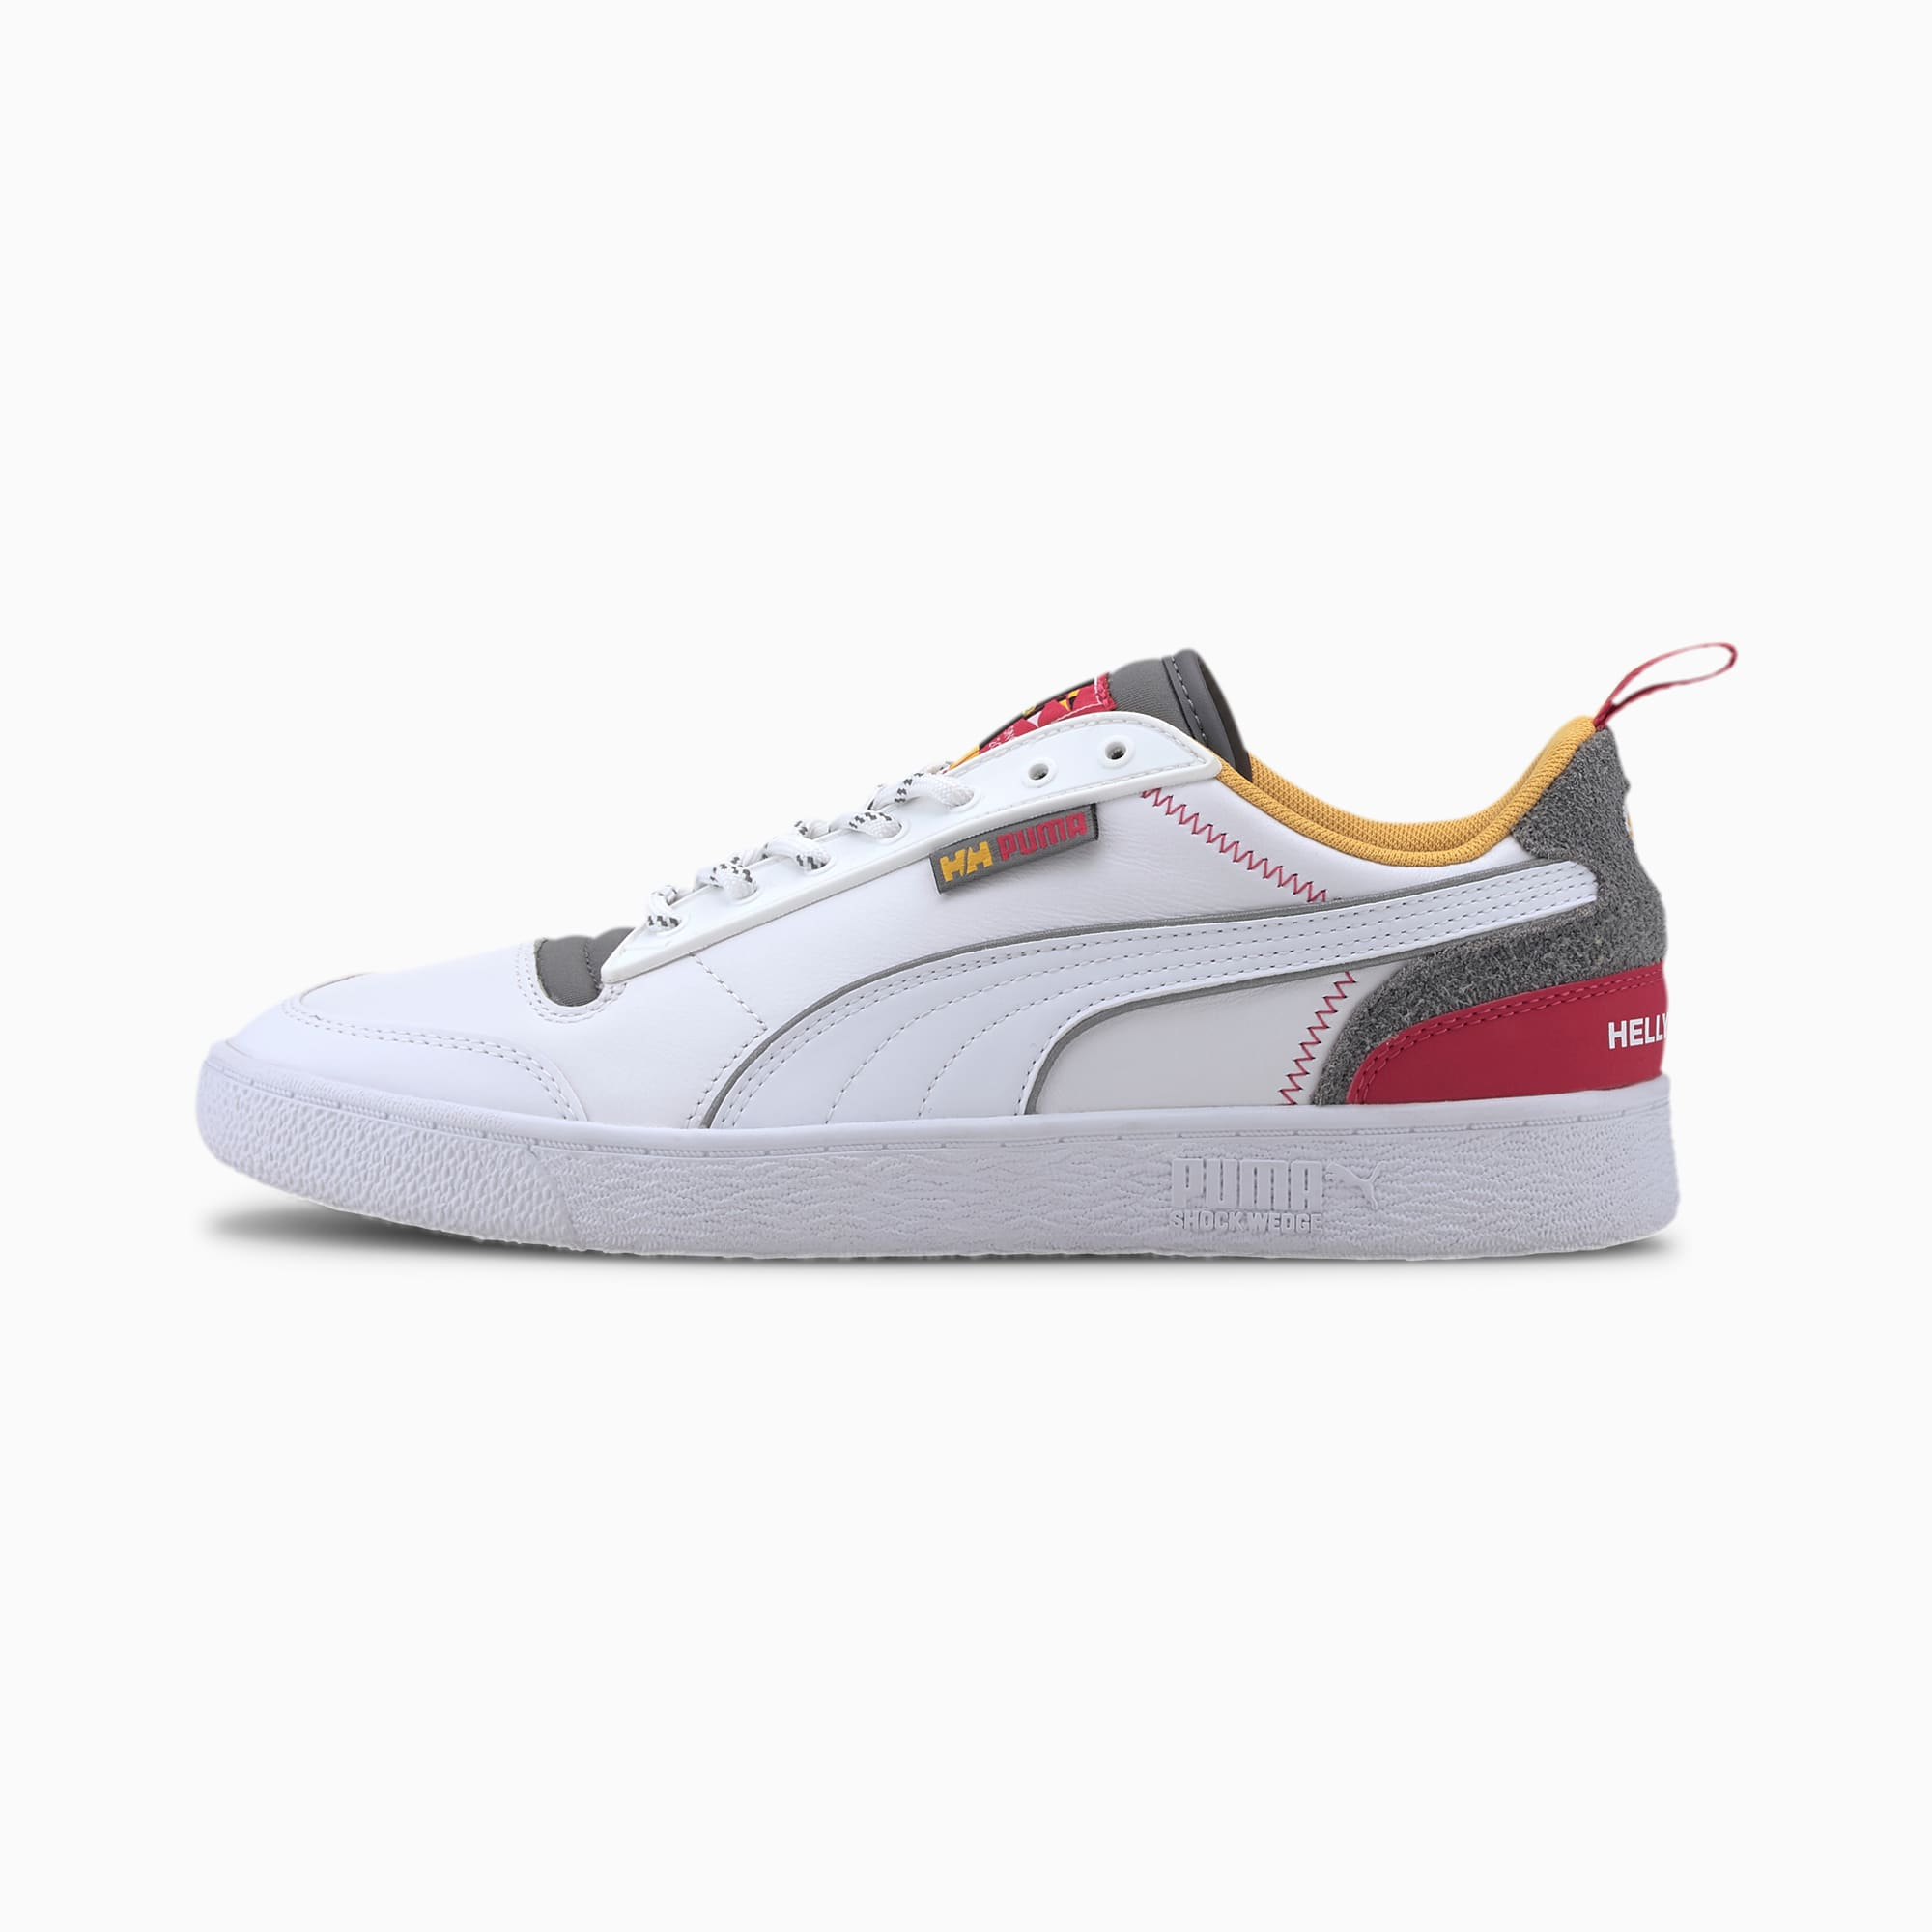 PUMA x HELLY HANSEN Ralph Sampson Sneakers